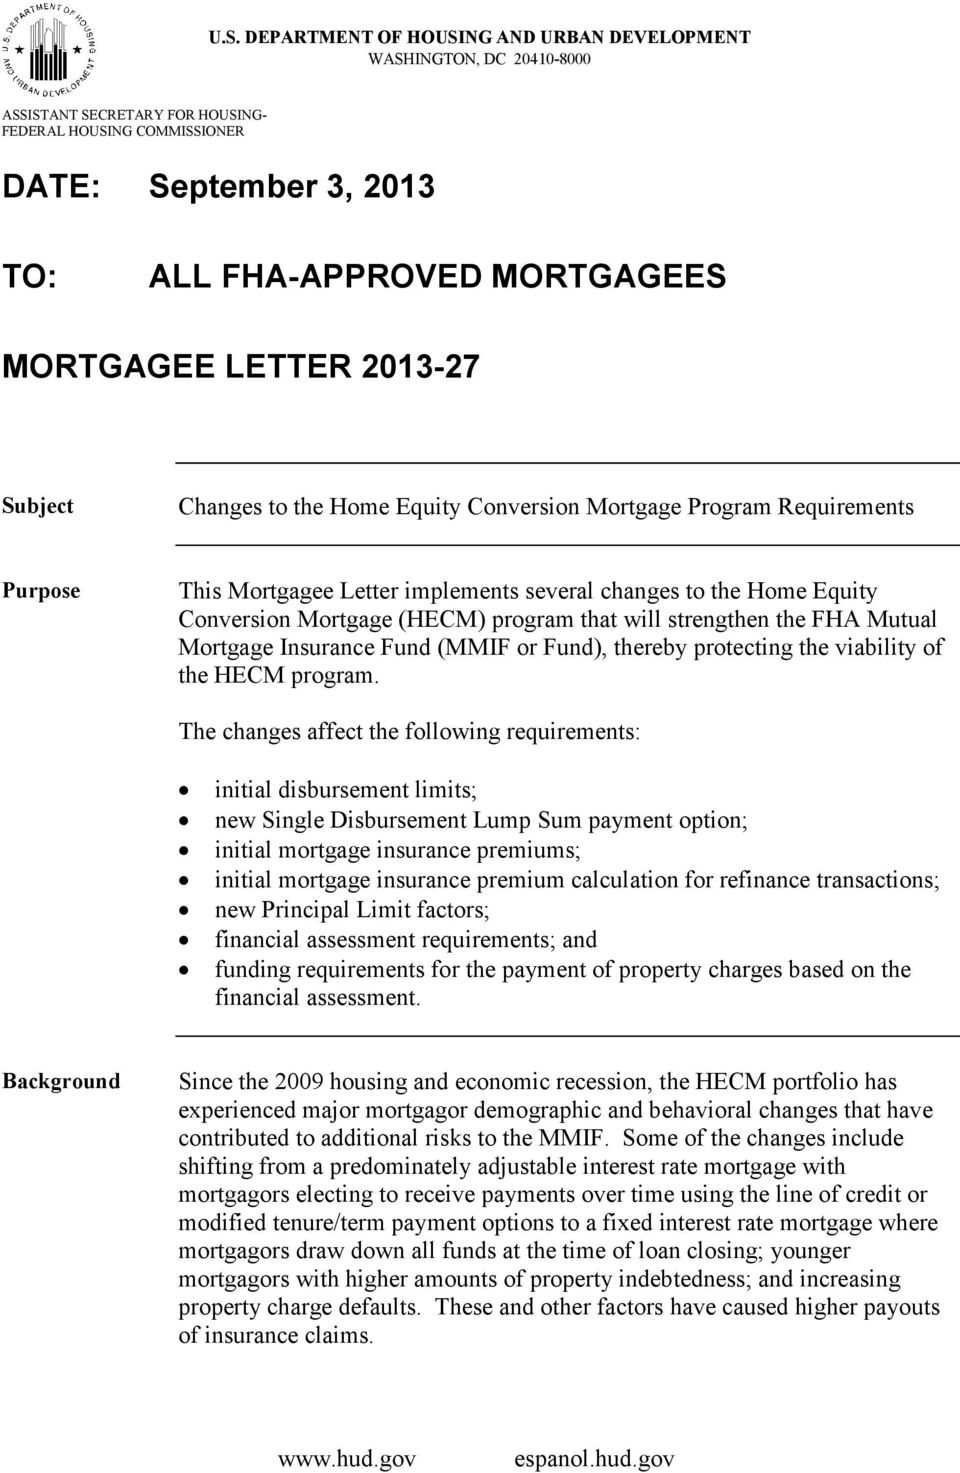 (HECM) program that will strengthen the FHA Mutual Mortgage Insurance Fund (MMIF or Fund), thereby protecting the viability of the HECM program.